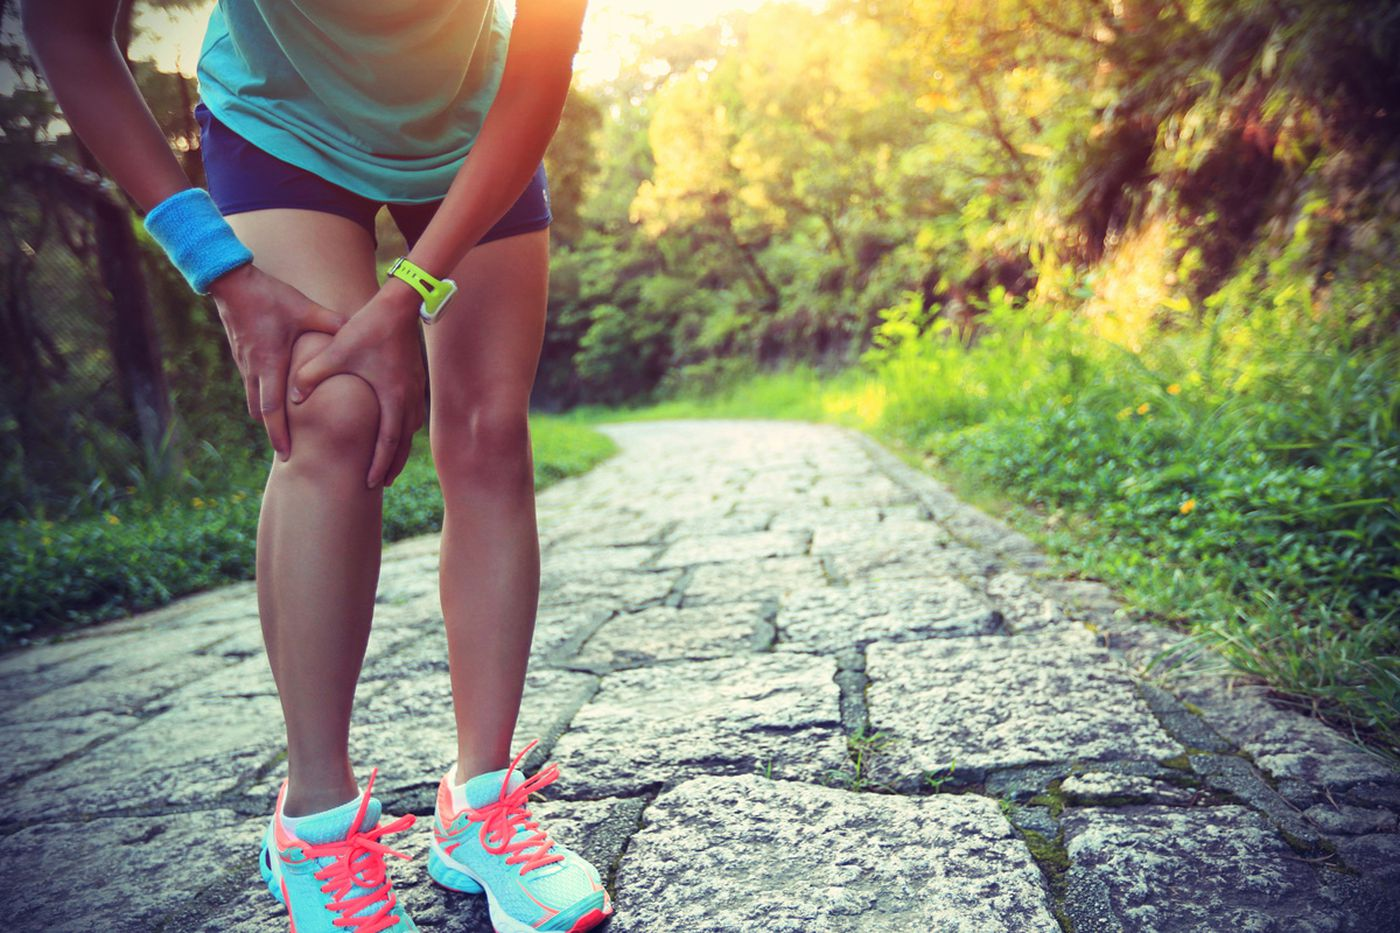 Q&A: What can I do to treat sharp pain in my knee?